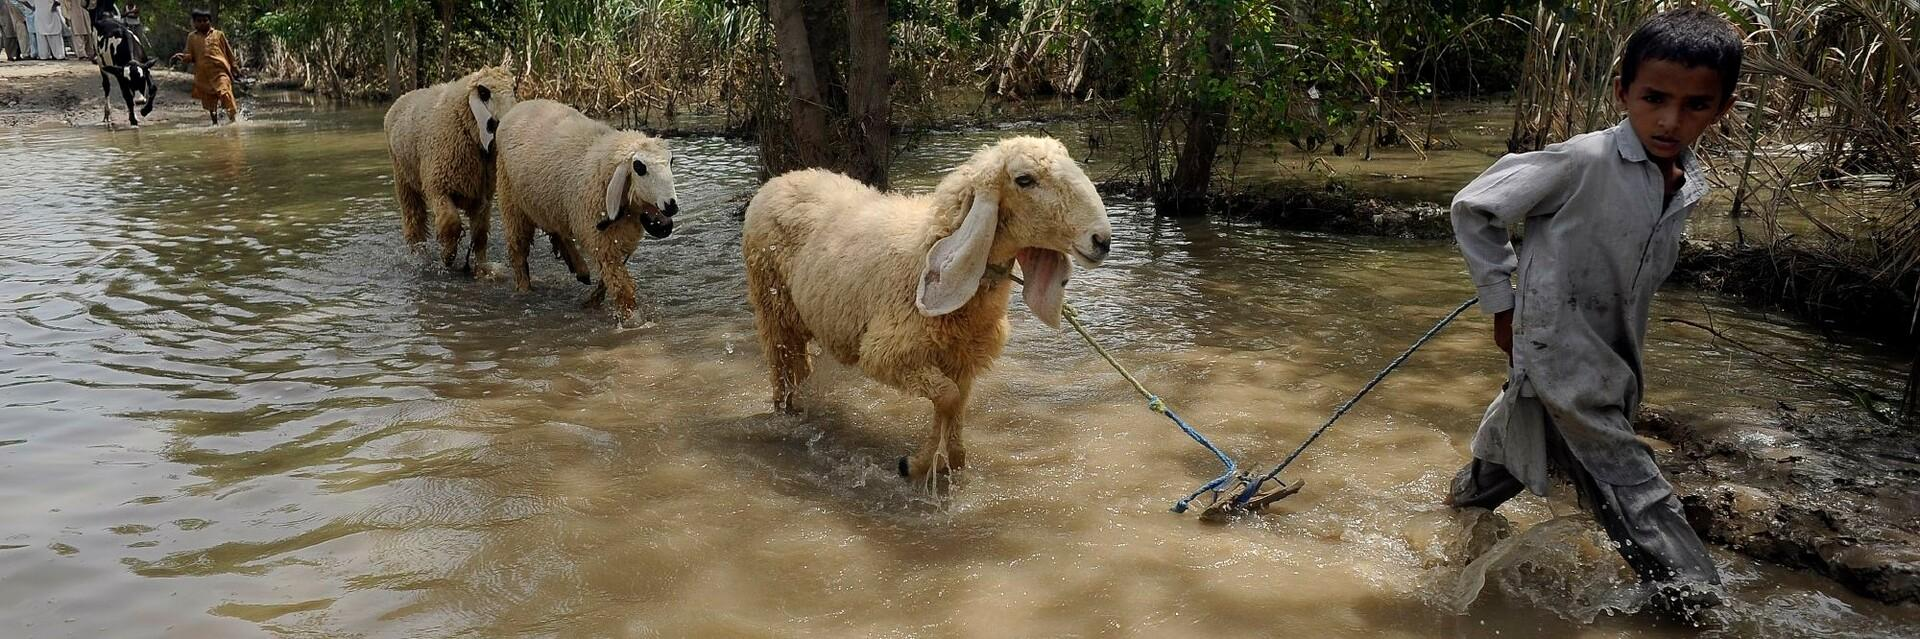 Sheep being led safety in a flood